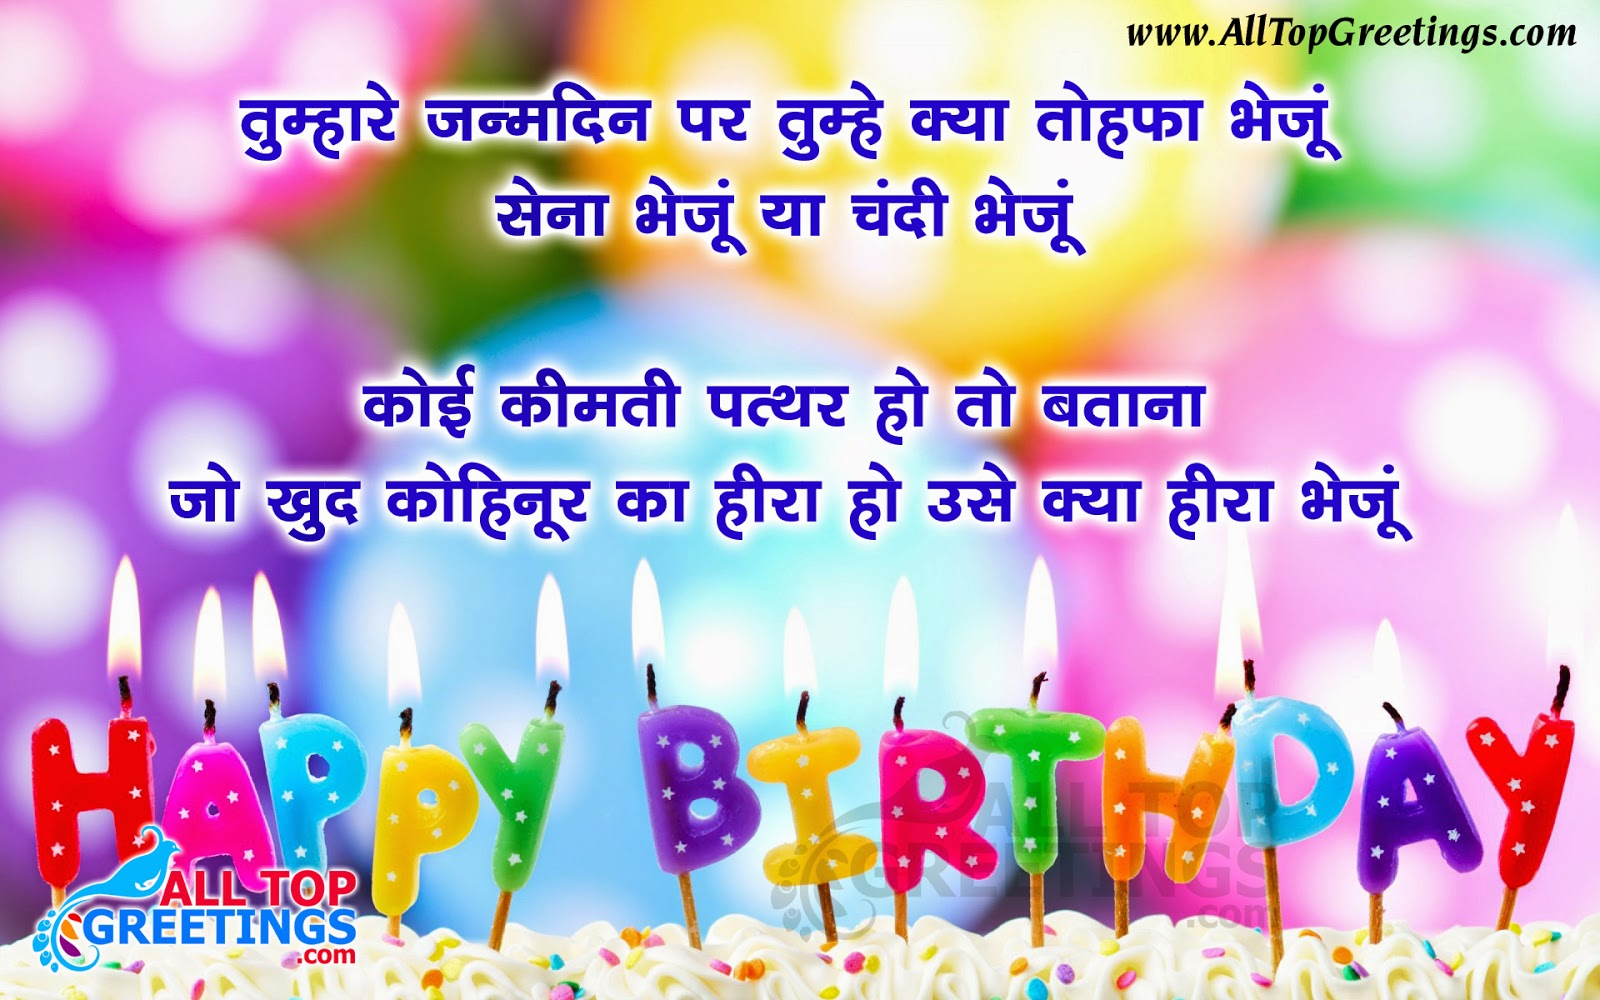 Hindi Happy Birthday Greetings In Hindi Font Free 9 All Top